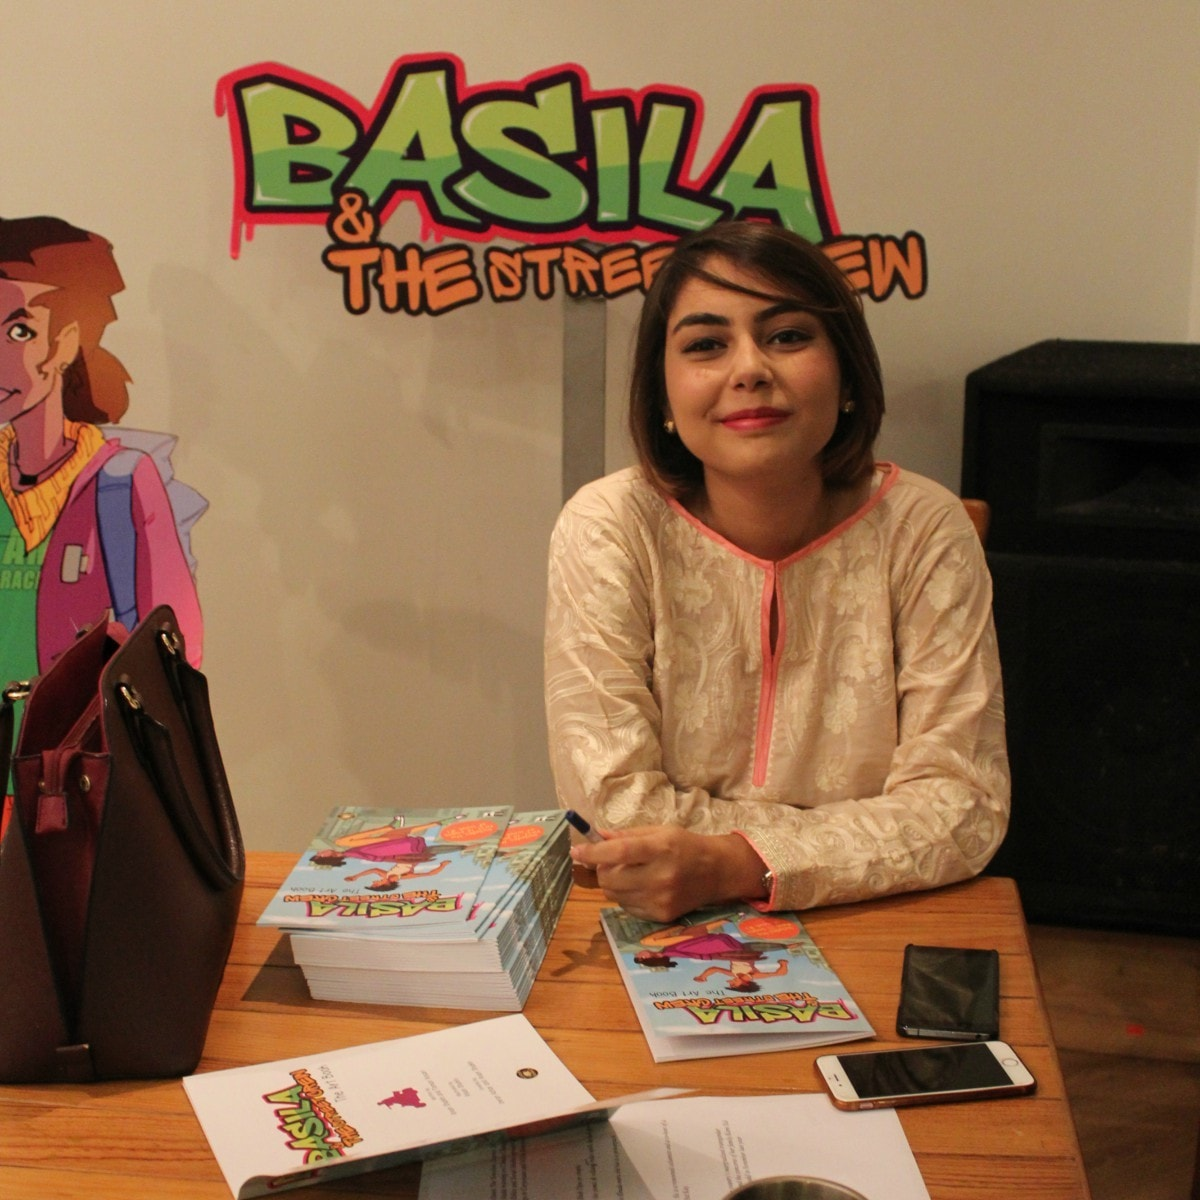 Anain Shaikh is the co-creator, co-writer and illustrator of Basila